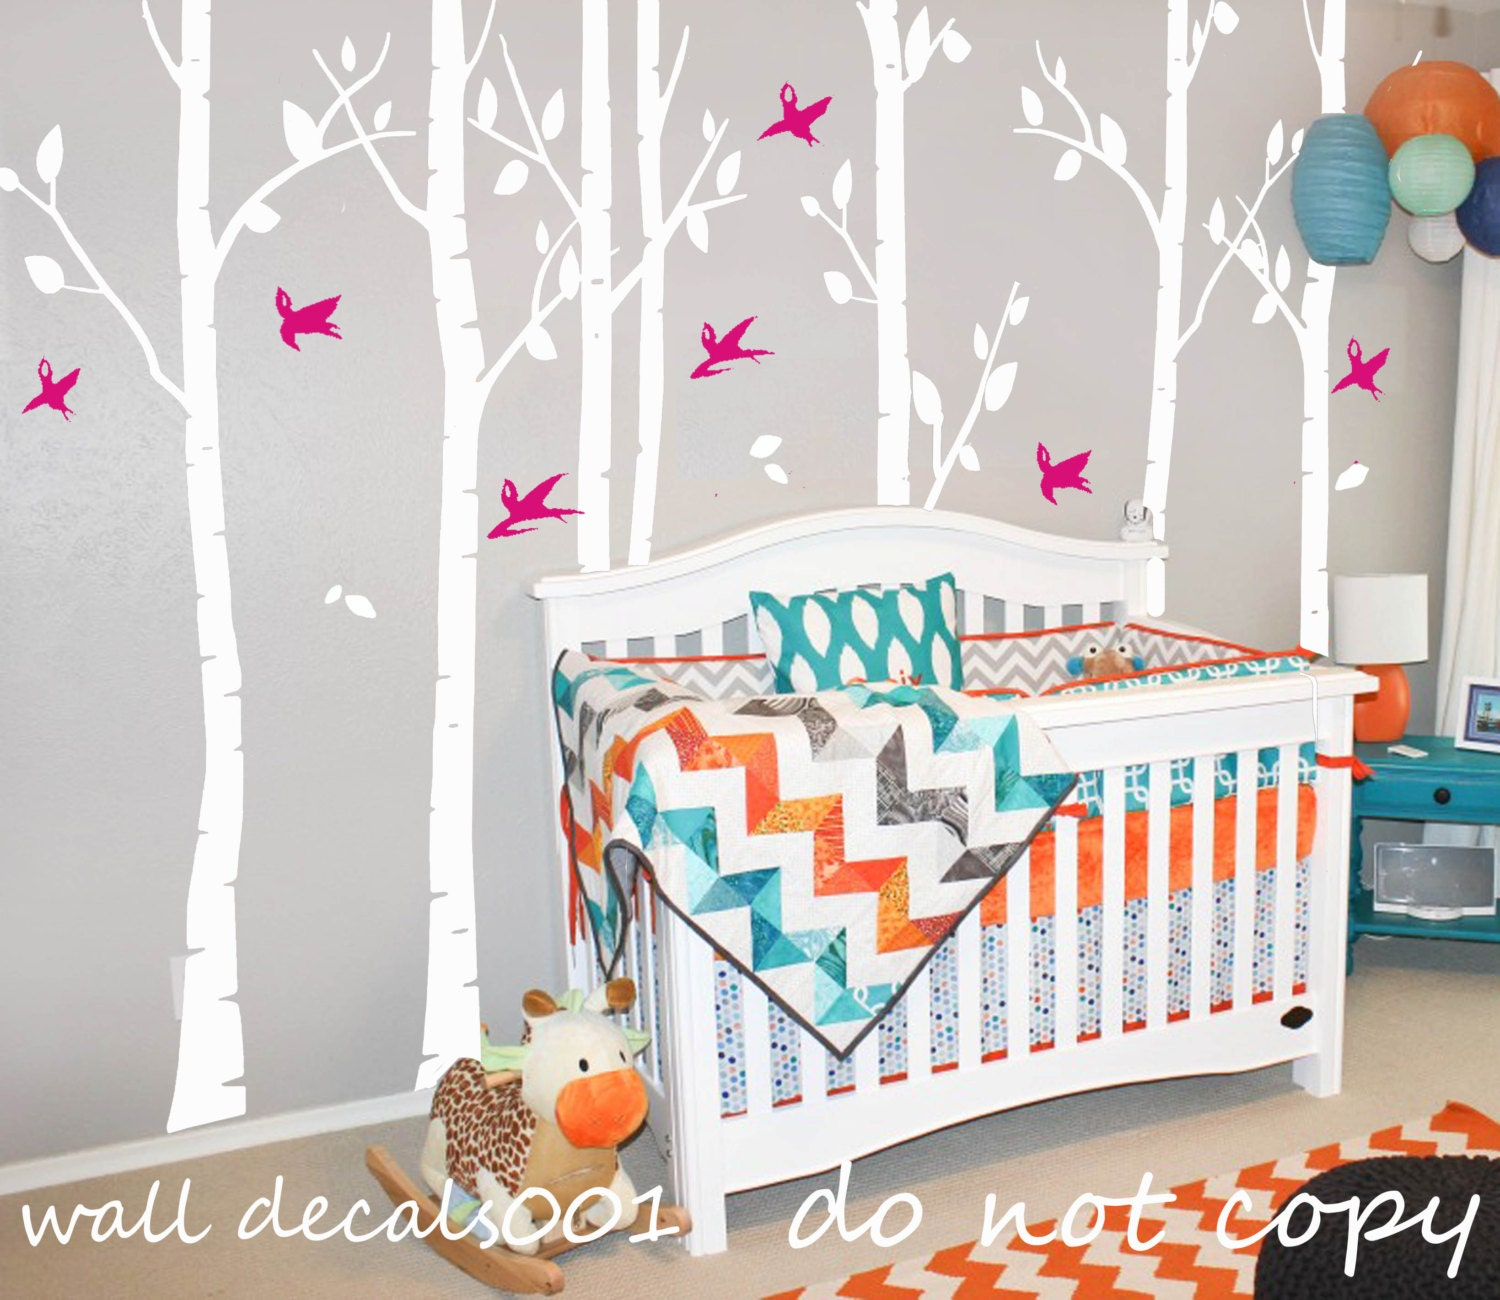 15  white Tree Wall Decals wall Stickers wall decor,tree,decal,kids